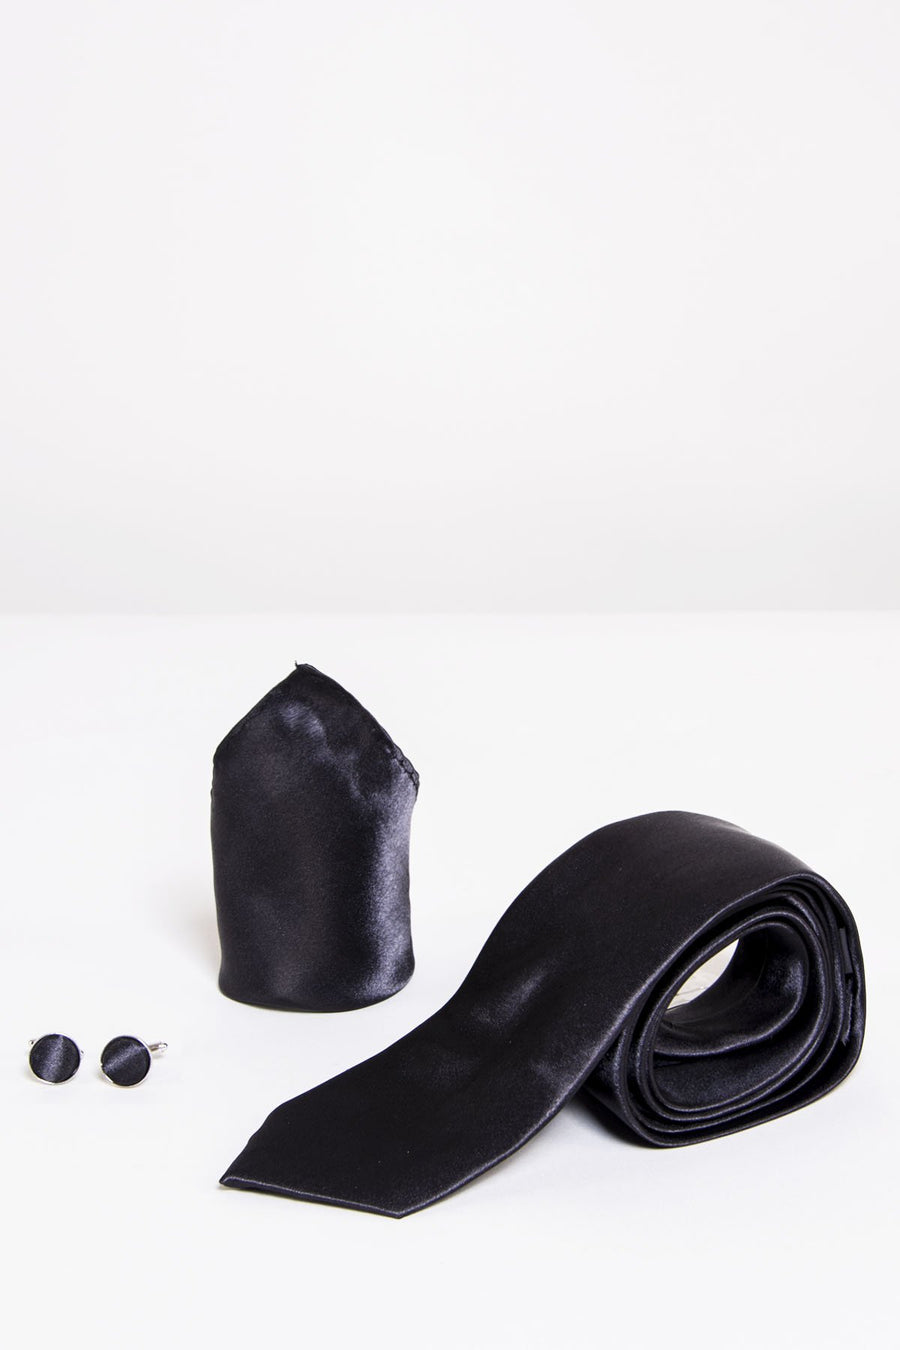 ST Black Satin Tie, Cufflink & Pocket Square - Wedding Suit Direct